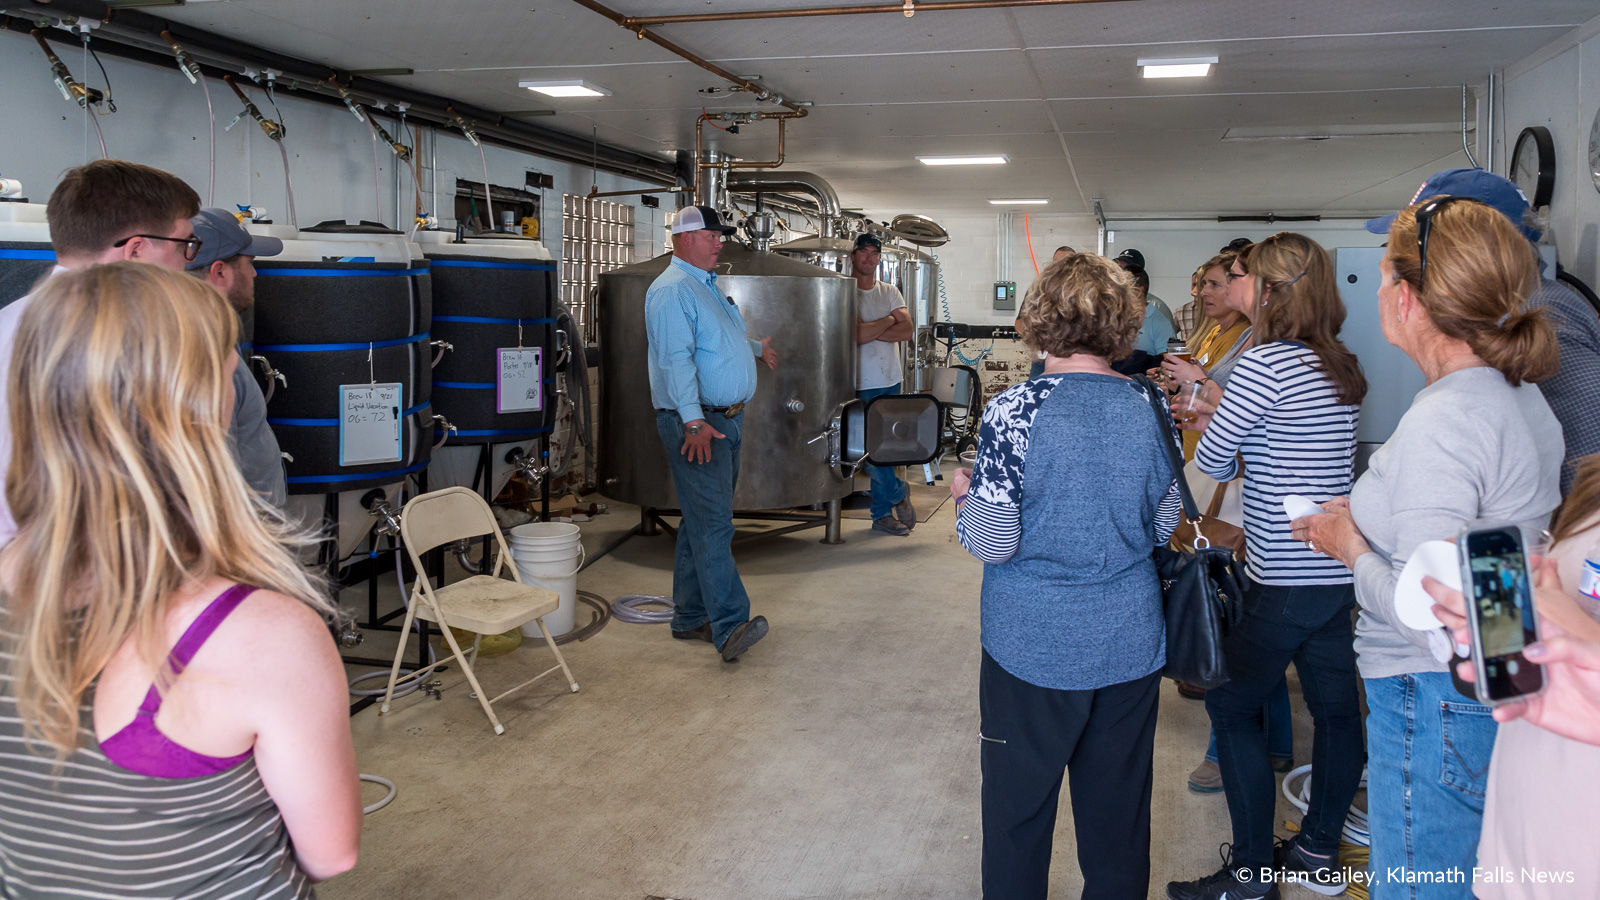 Ty and Ryan Kliewer speak about Skyline Brewery to attendees of the 2018 KWUA Fall Harvest Tour. September 27, 2018 (Brian Gailey)